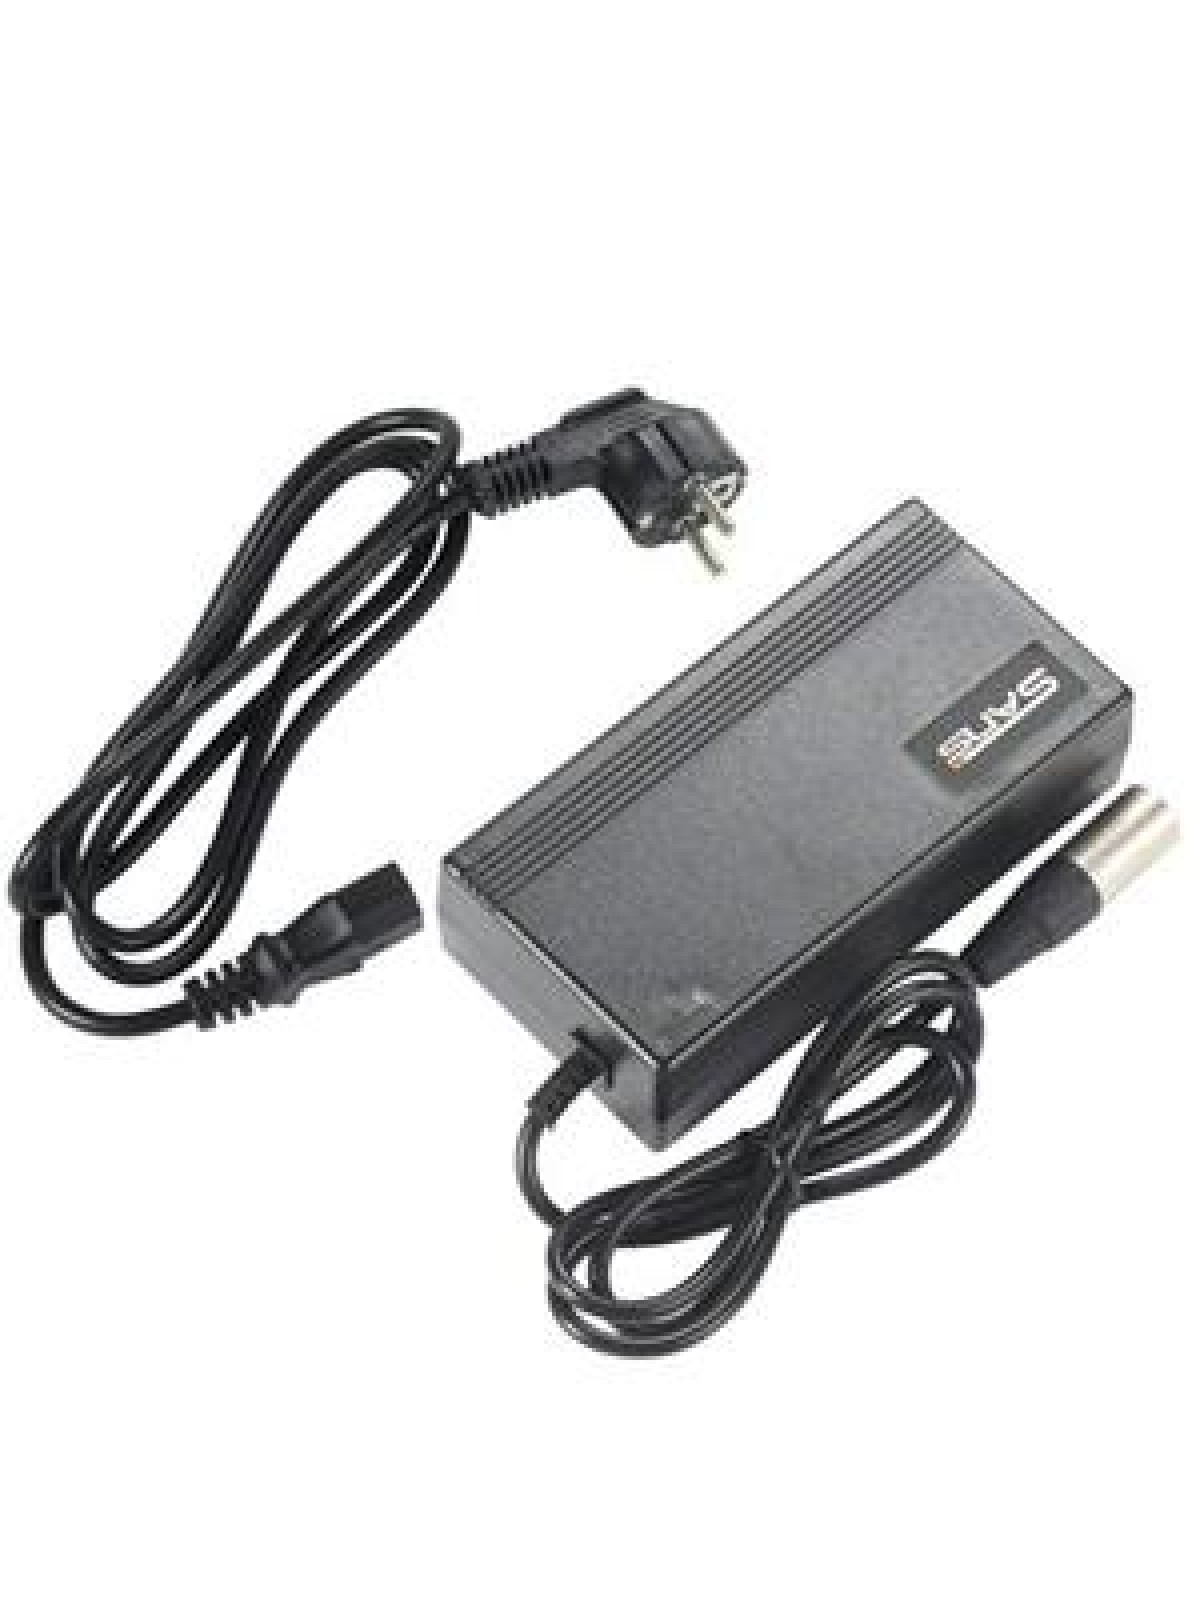 Charger 48v 3A